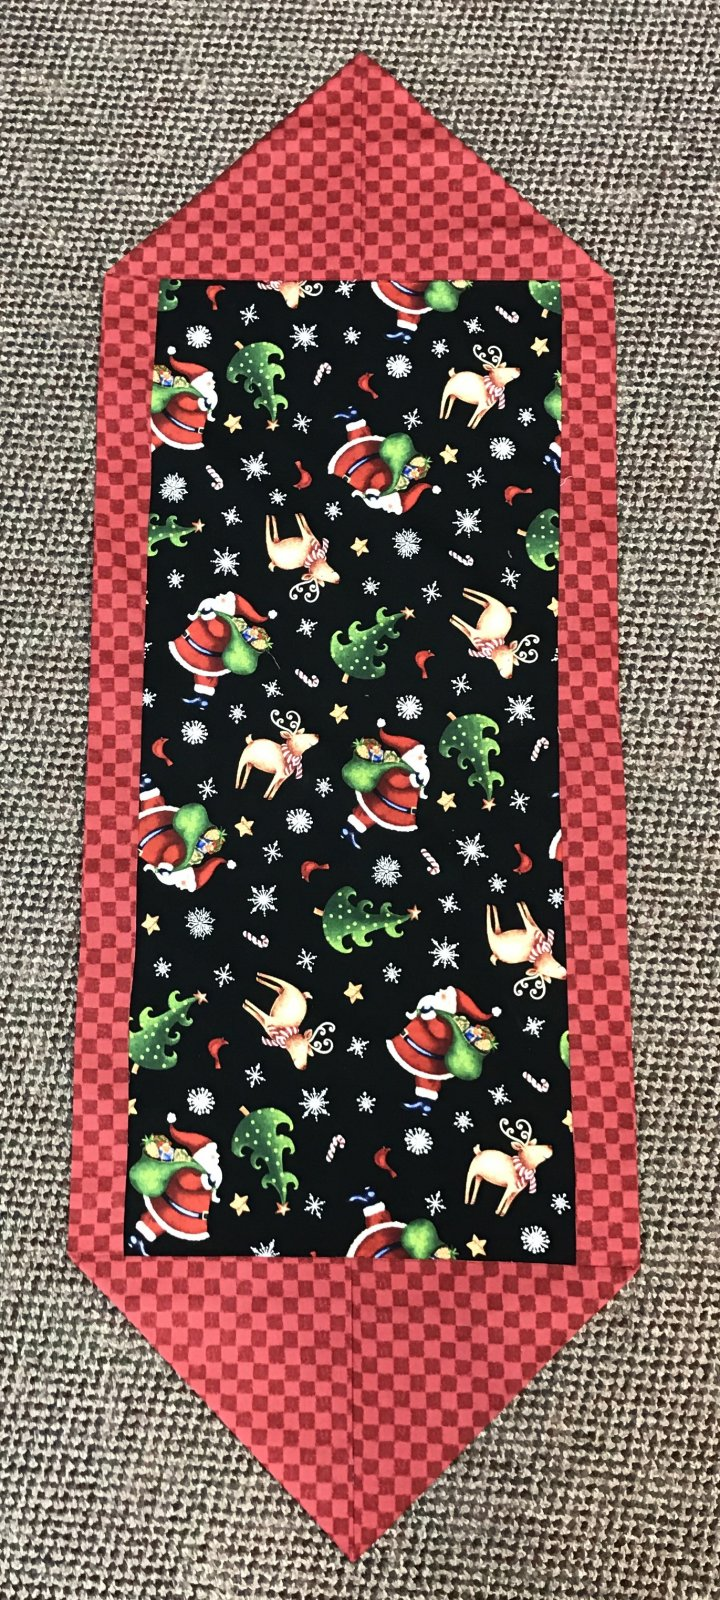 10-Minute 25 Days Til Christmas Table Runner 14.5 x 42